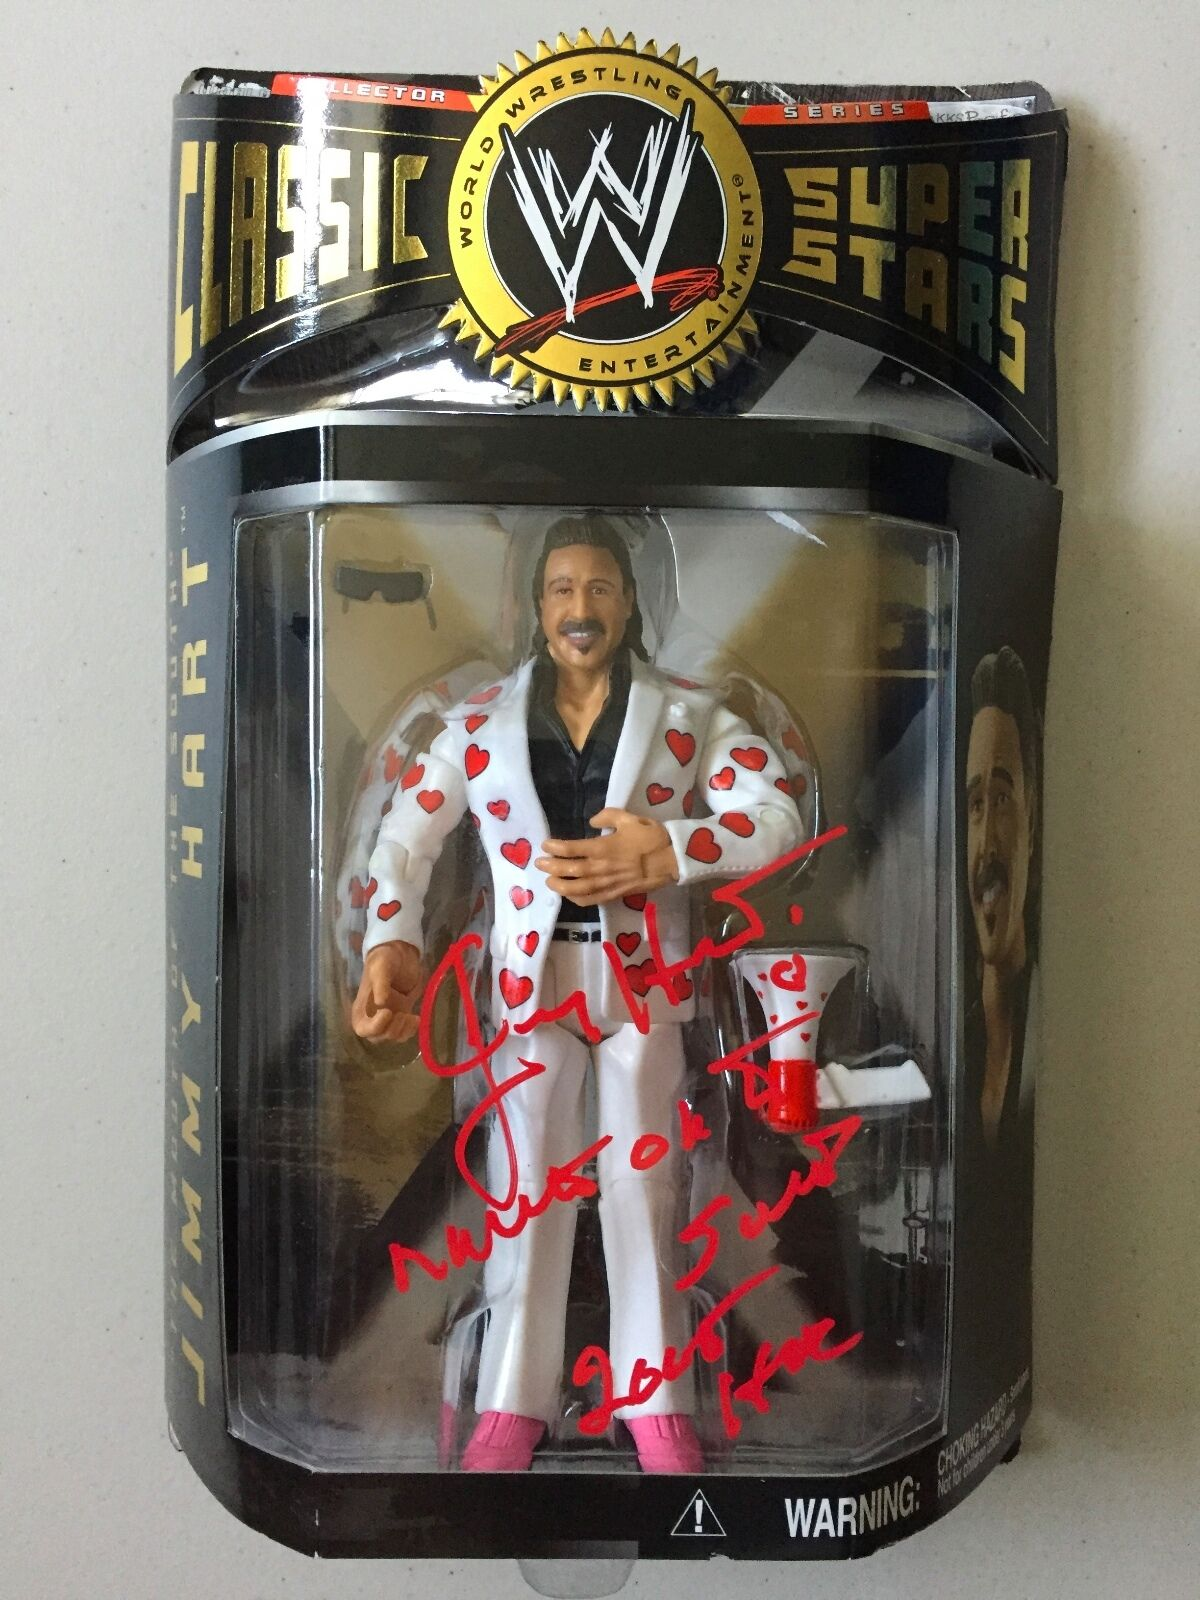 WWE Classic Superstar MOUTH OF THE SOUTH JIMMY HART Autographed Wrestling Figure